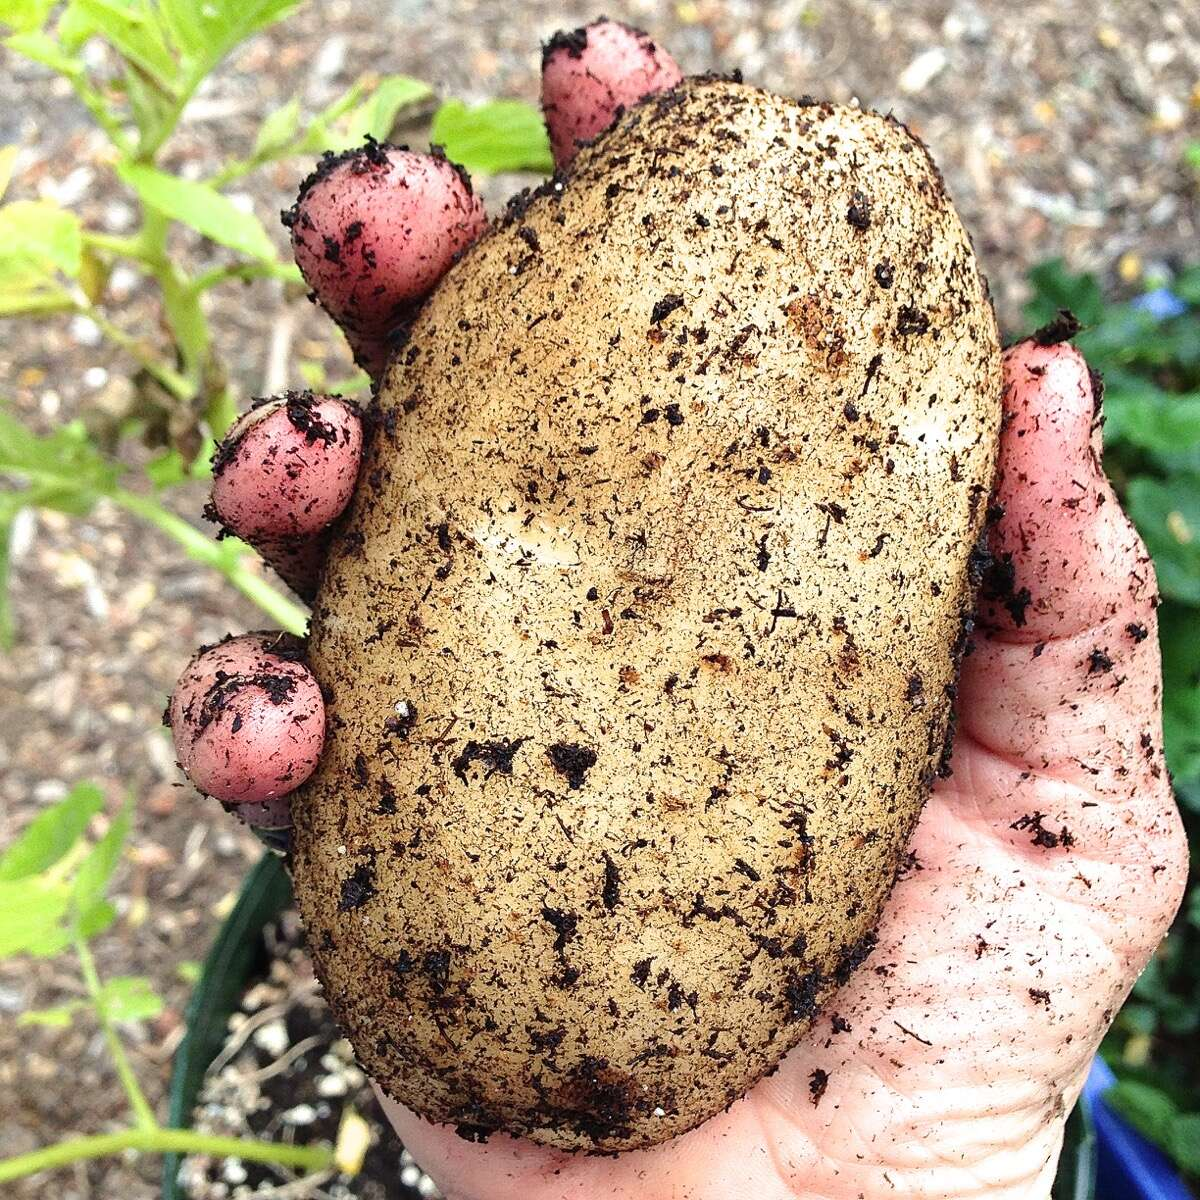 Hand holding just-harvested potato, still covered in dirt.